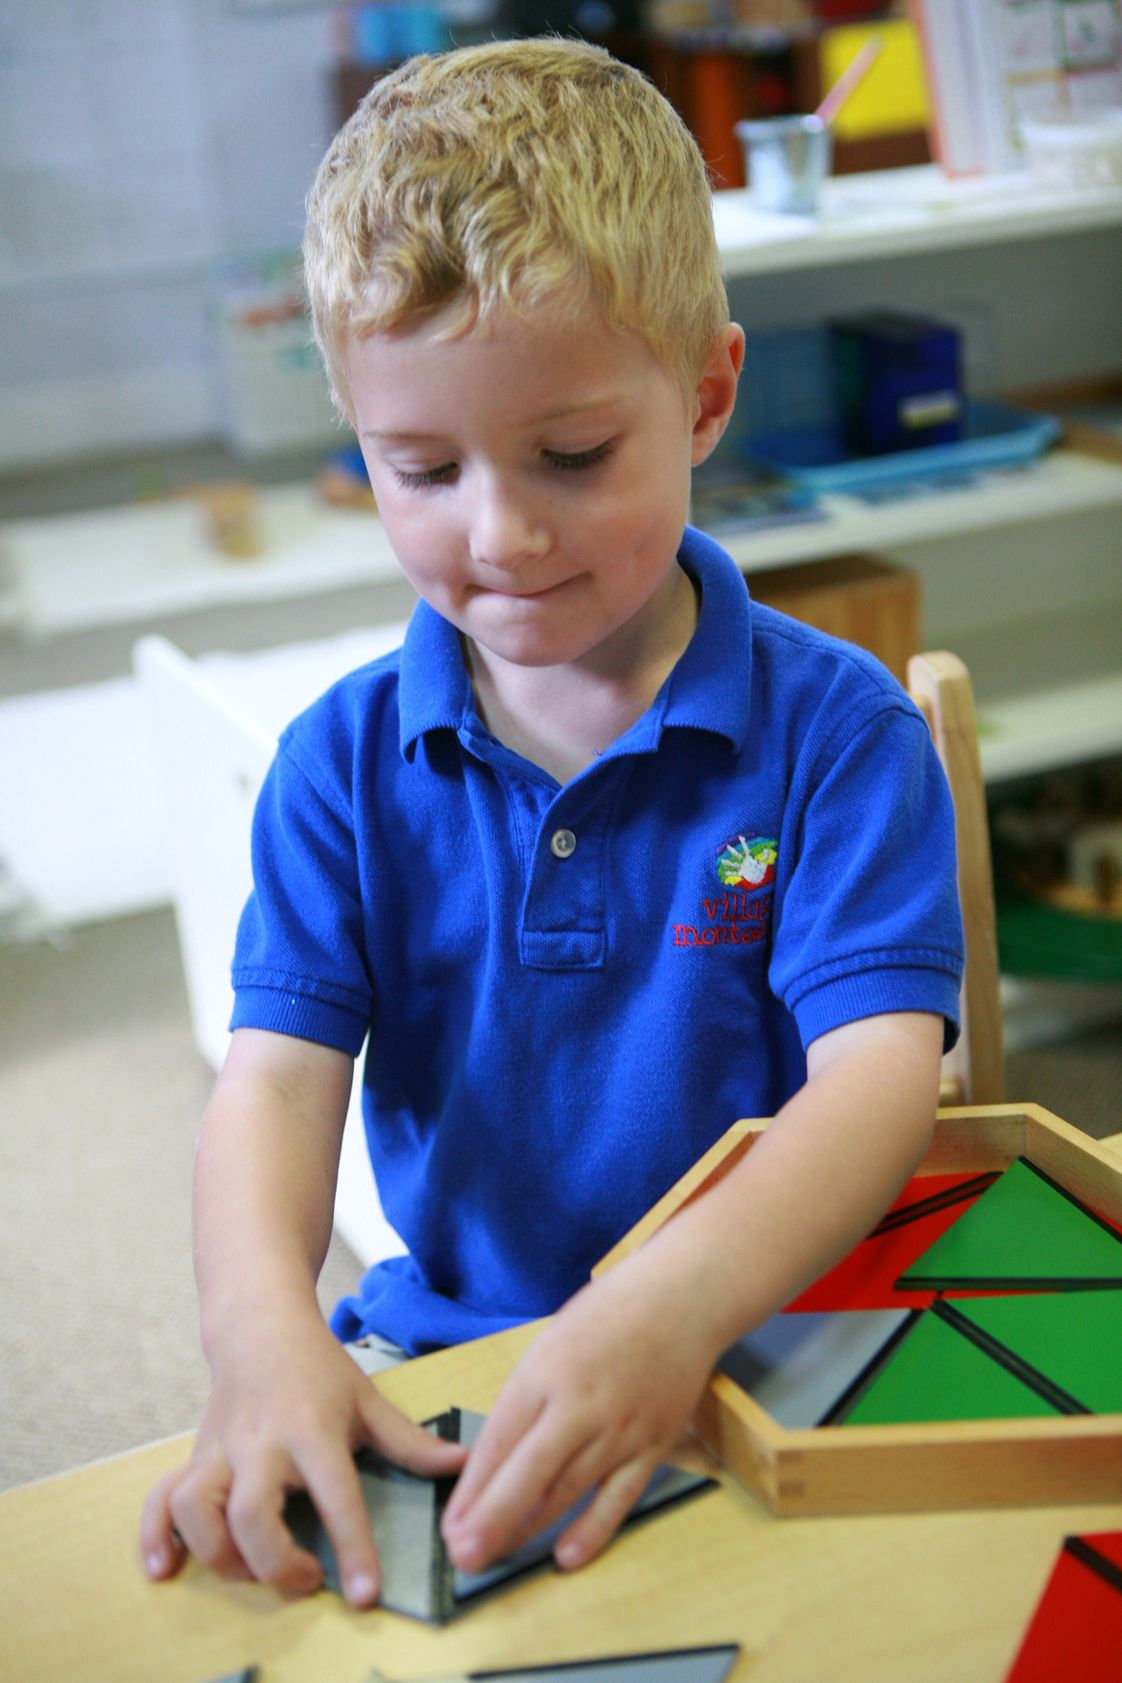 Village Montessori Day School Photo #1 - Constructive Triangles